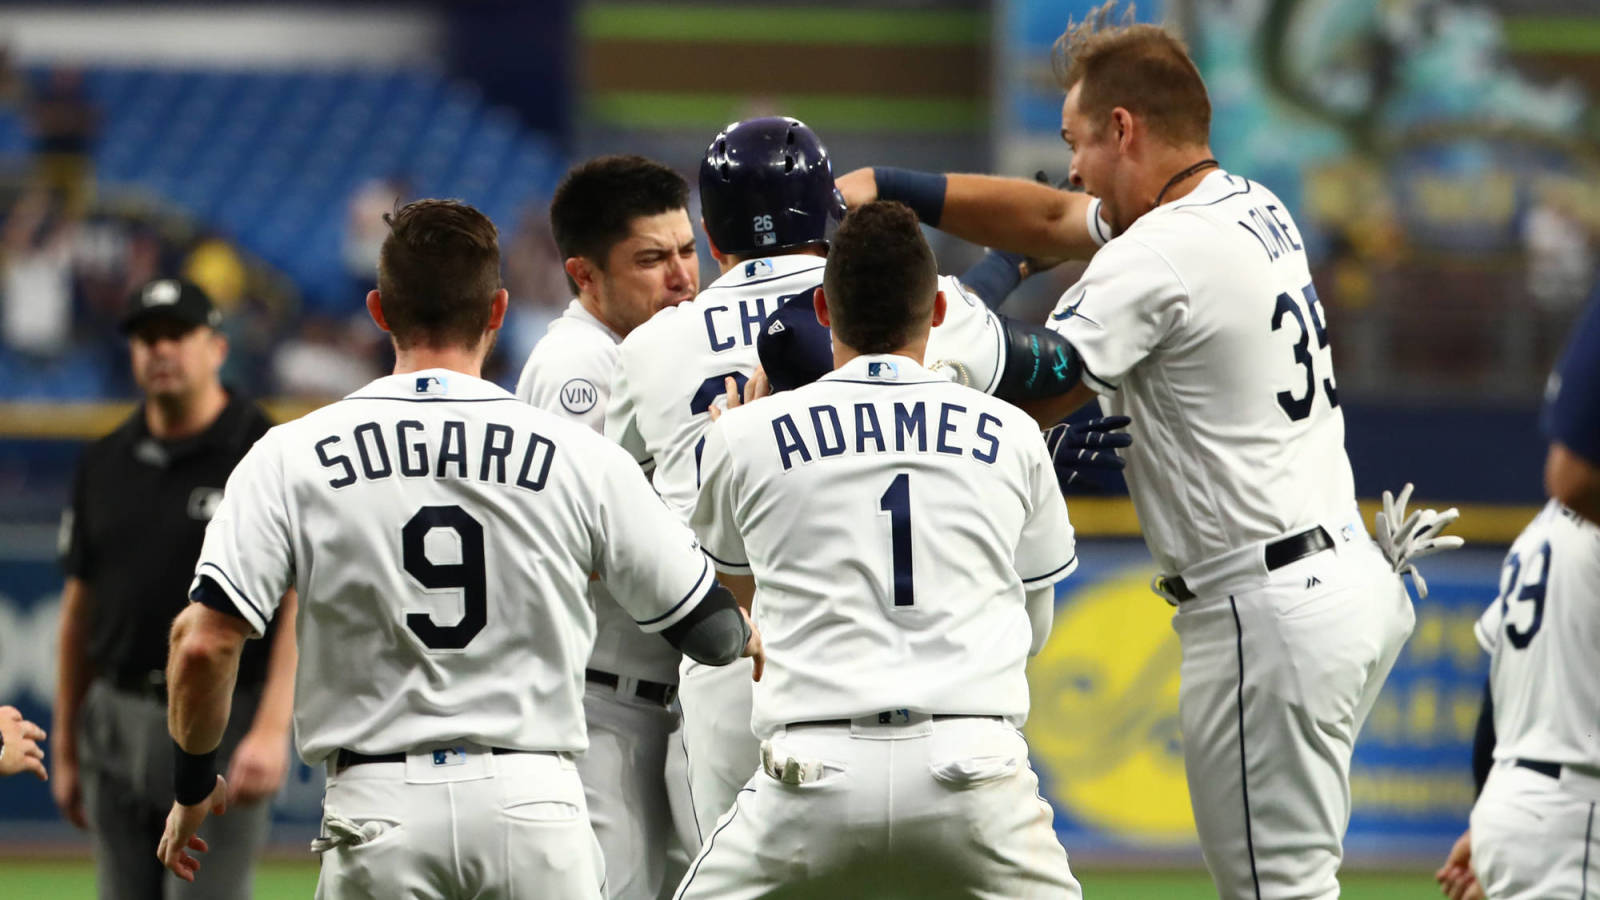 Rays Roster Demonstrates An Alternative Approach To Team